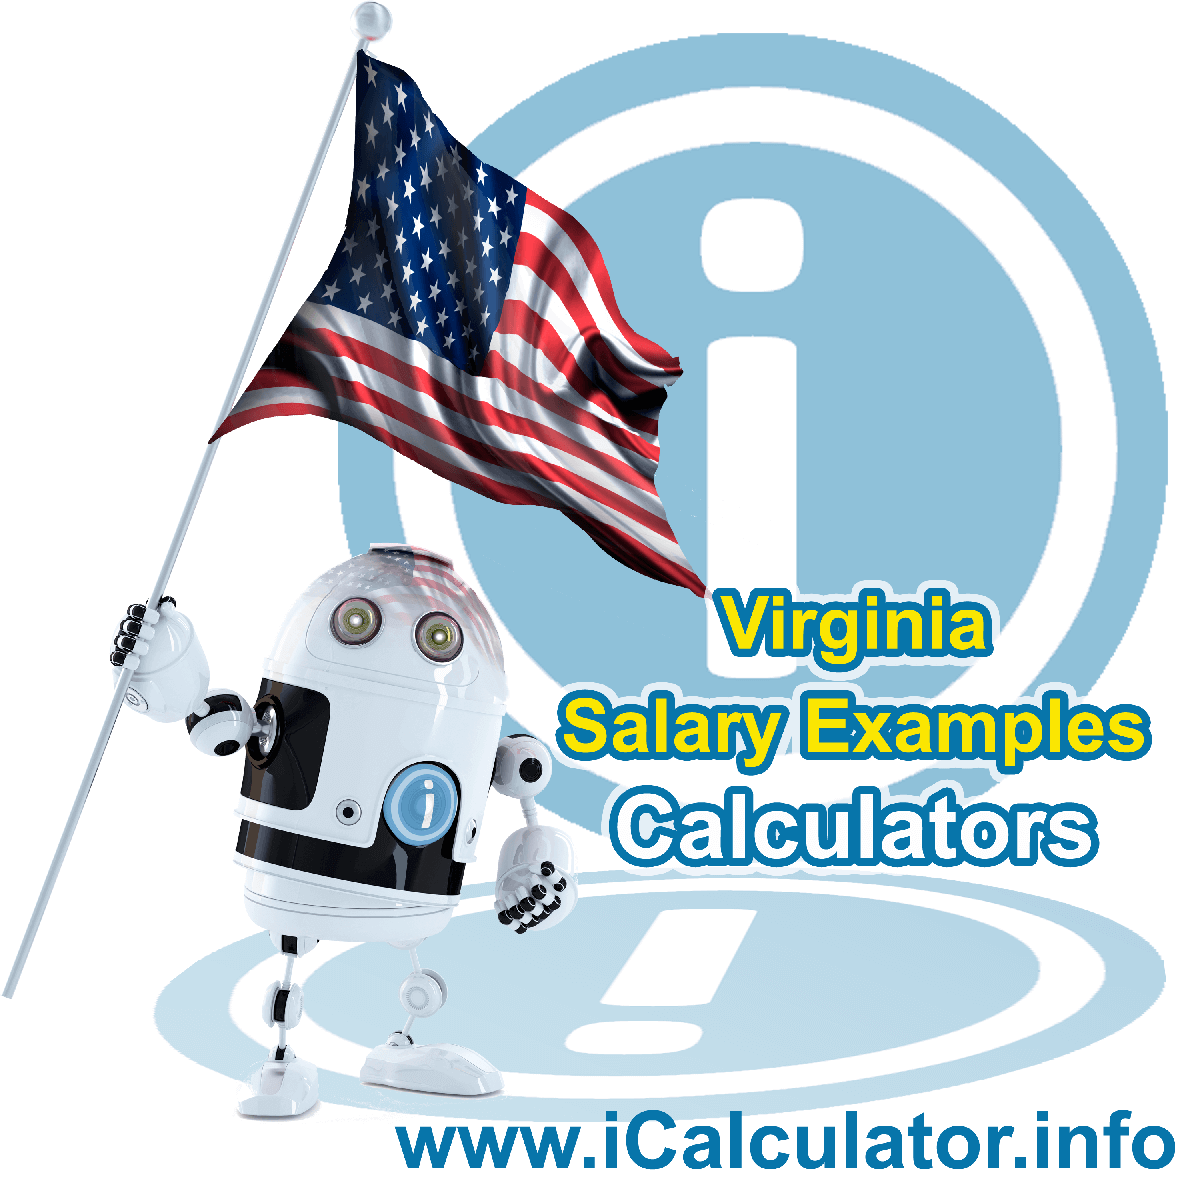 Virginia Salary Example for $200,000.00 in 2021 | iCalculator | $200,000.00 salary example for employee and employer paying Virginia State tincome taxes. Detailed salary after tax calculation including Virginia State Tax, Federal State Tax, Medicare Deductions, Social Security, Capital Gains and other income tax and salary deductions complete with supporting Virginia state tax tables